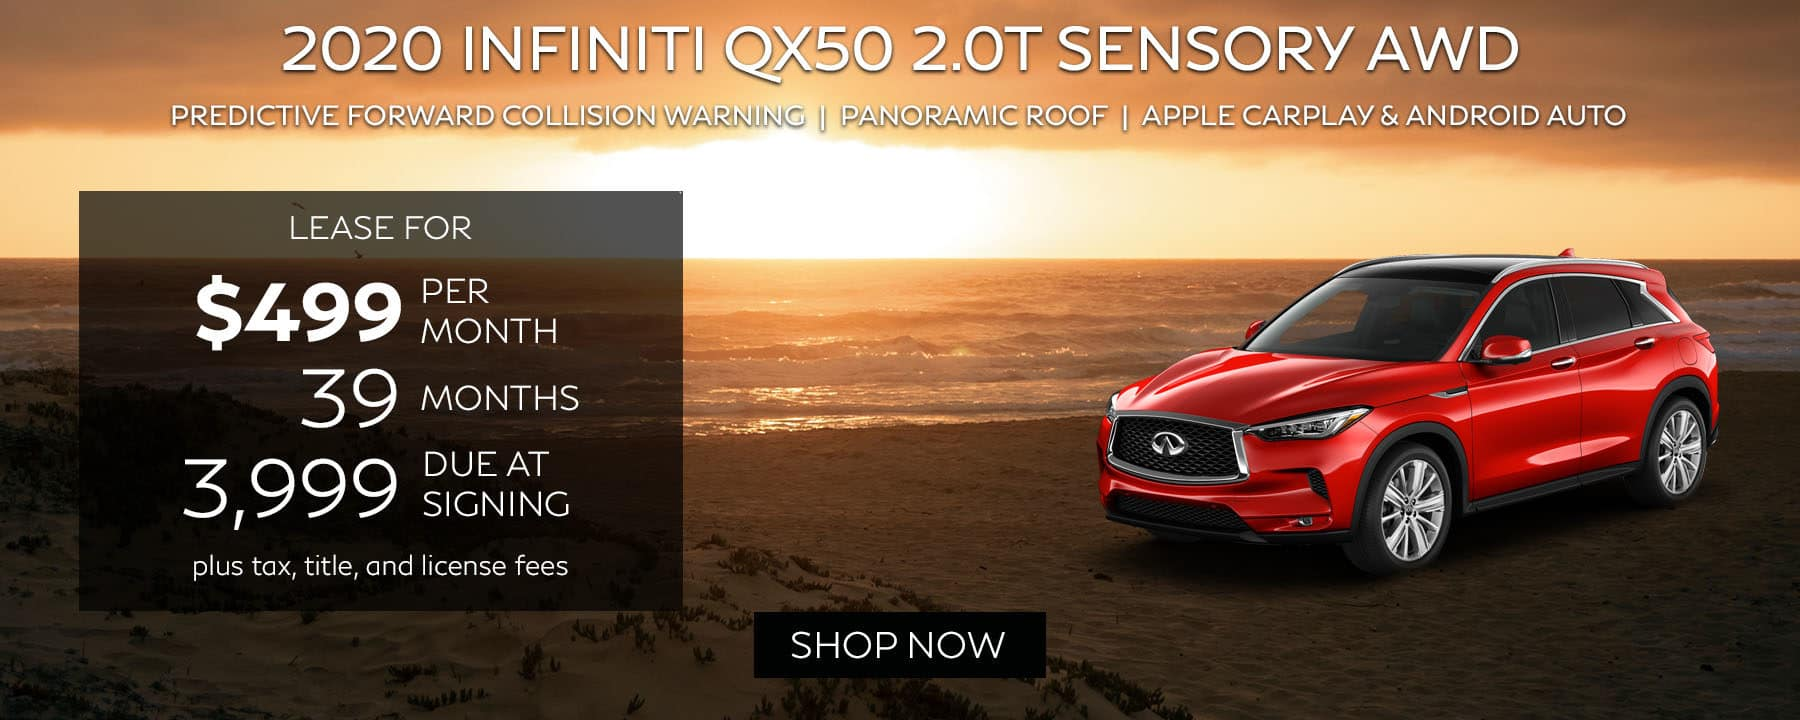 Lease a 2020 INFINITI QX50 2.0T SENSORY AWD for $499 per month with $3,999 down.